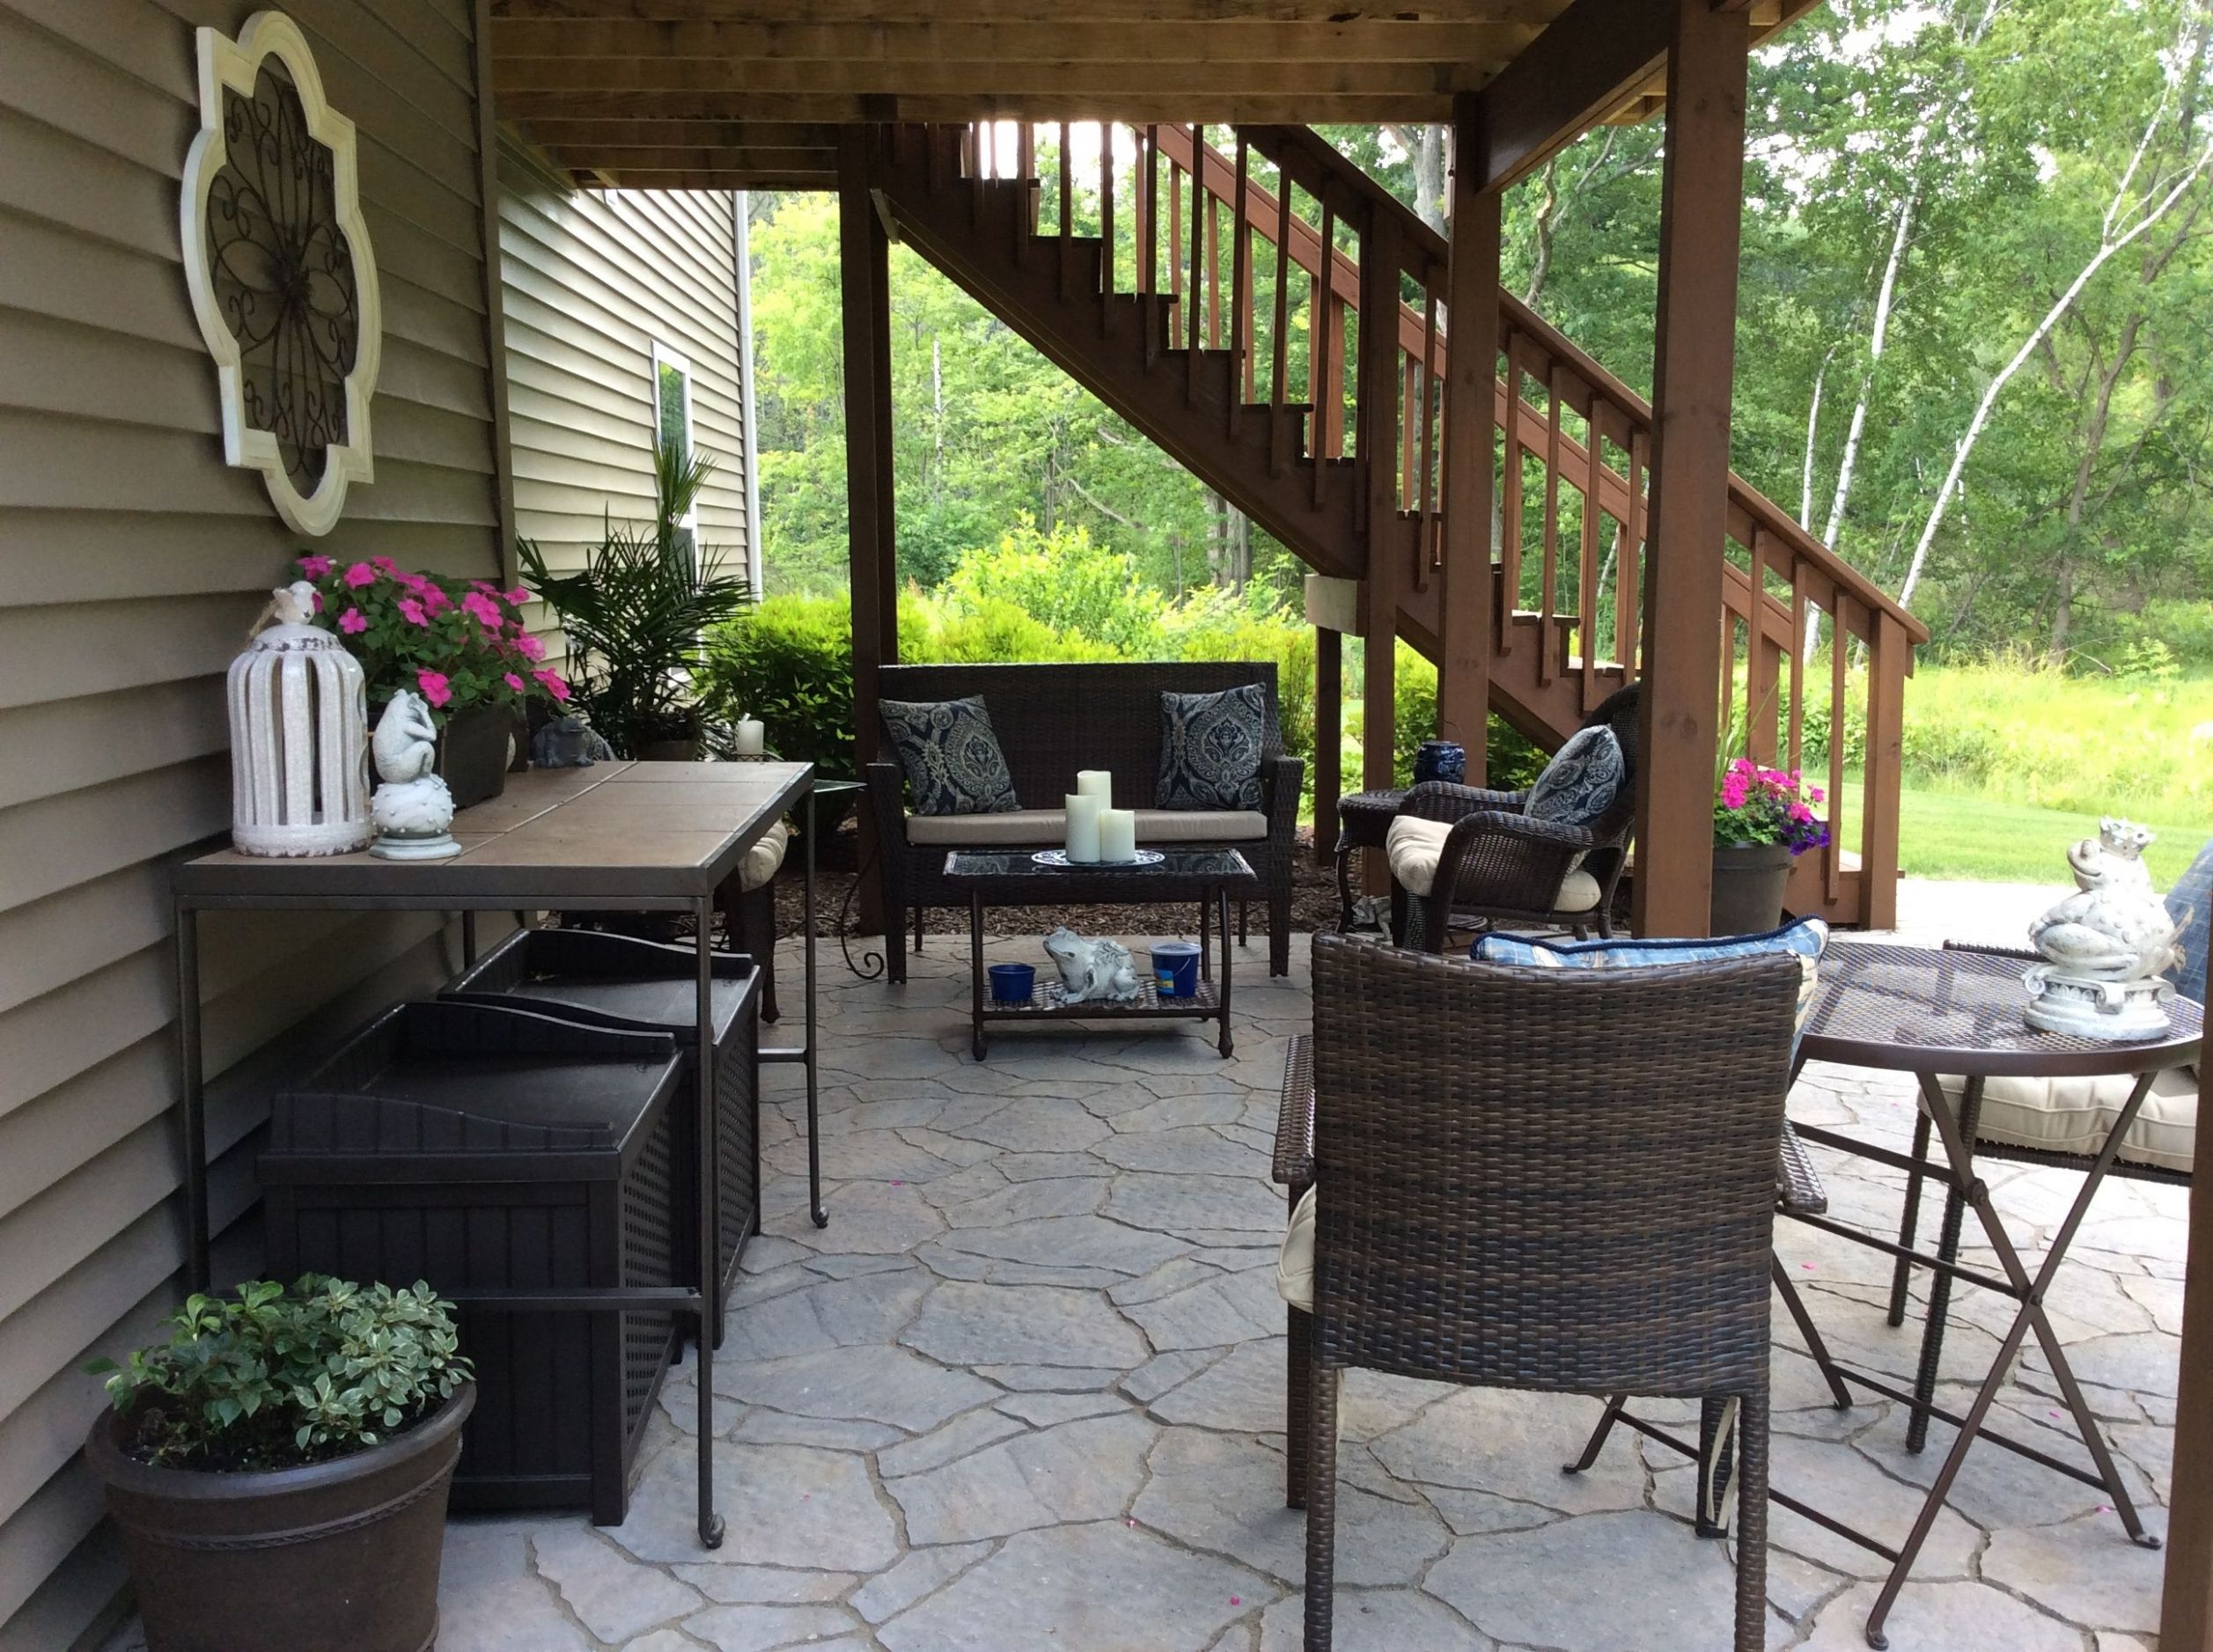 Under deck patio | Patio under decks, Patio layout, Decks backyard